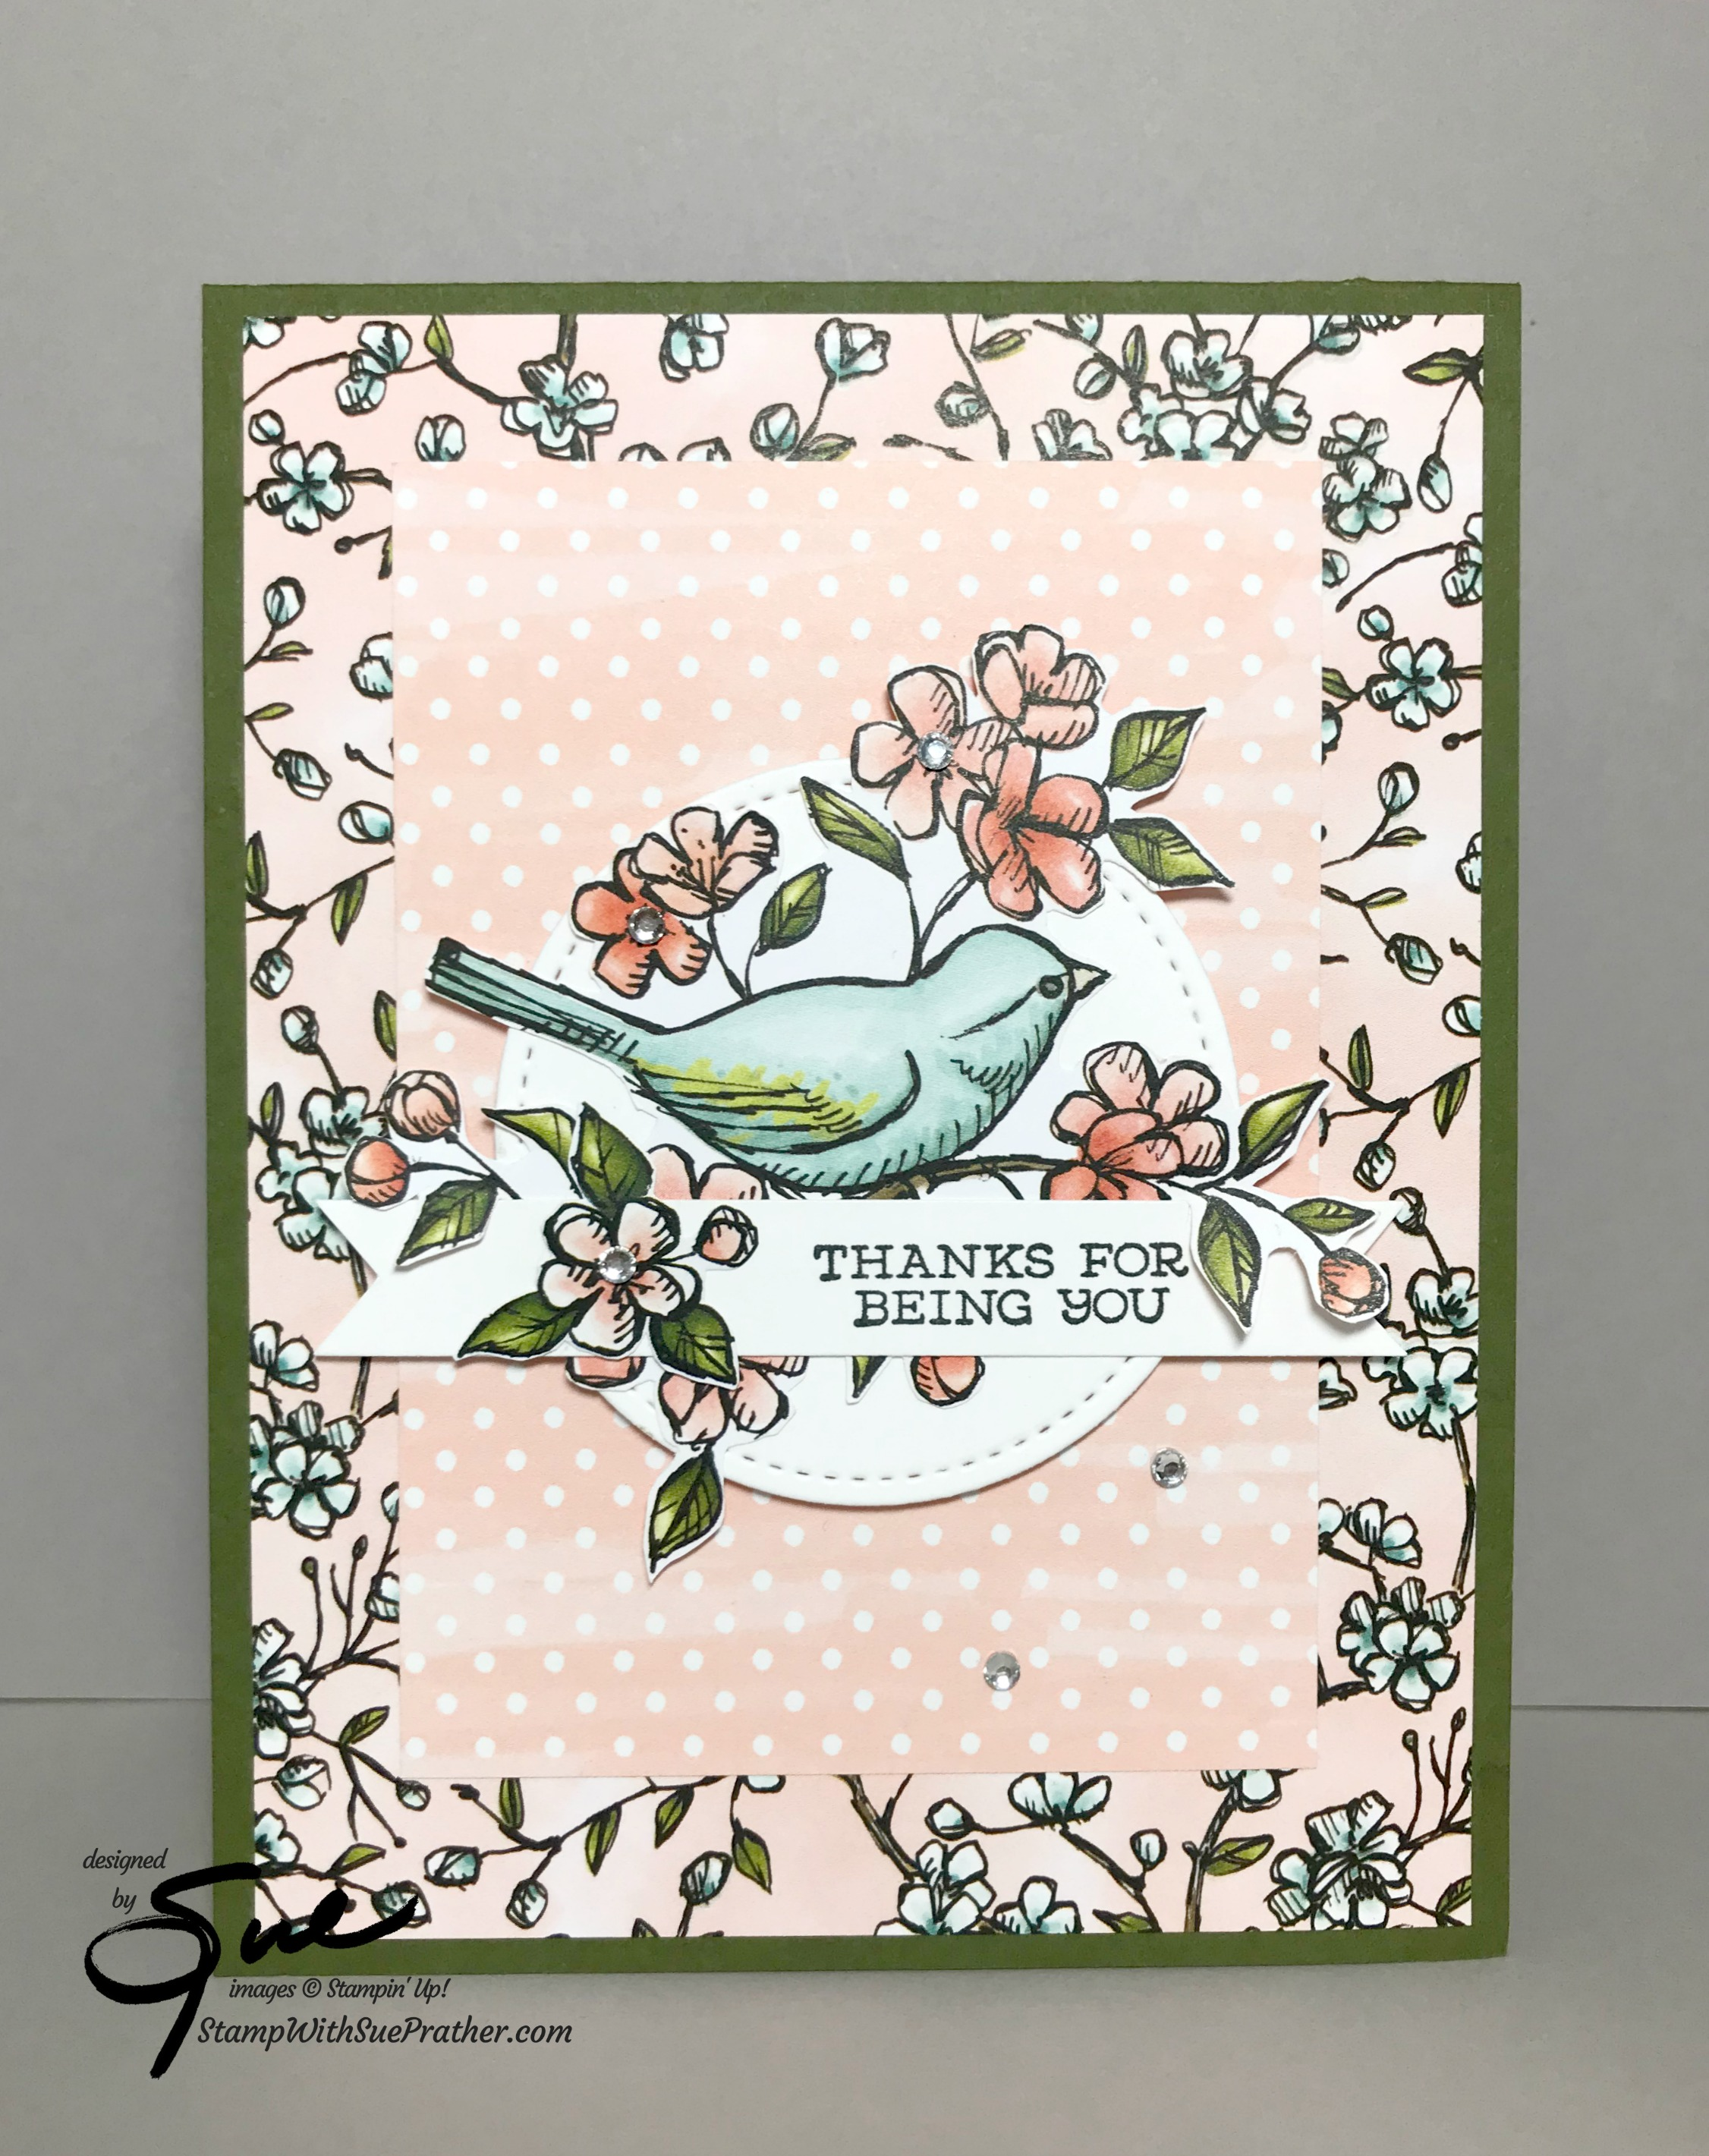 Stampin' Up! Free As A Bird Thanks for the Happy Inkin' Thursday